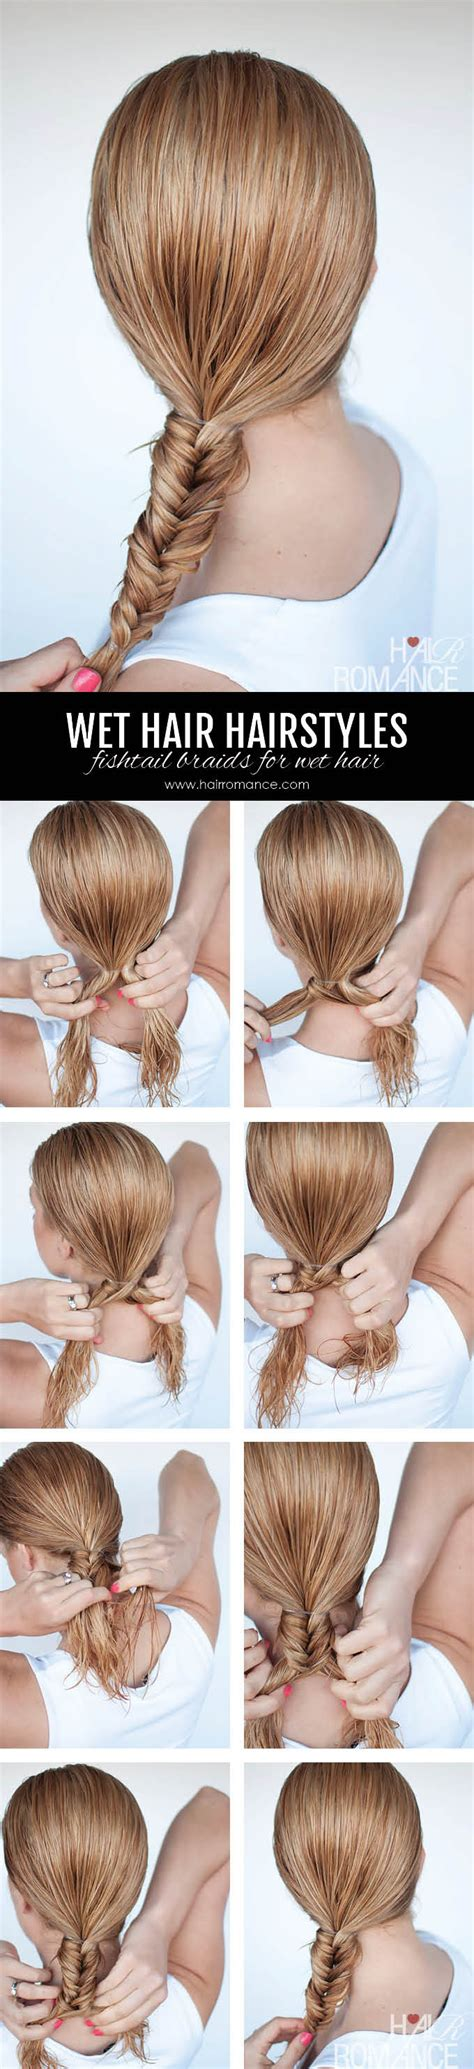 hairstyles to do when your hair s wet hairstyles for wet hair 3 simple braid tutorials you can